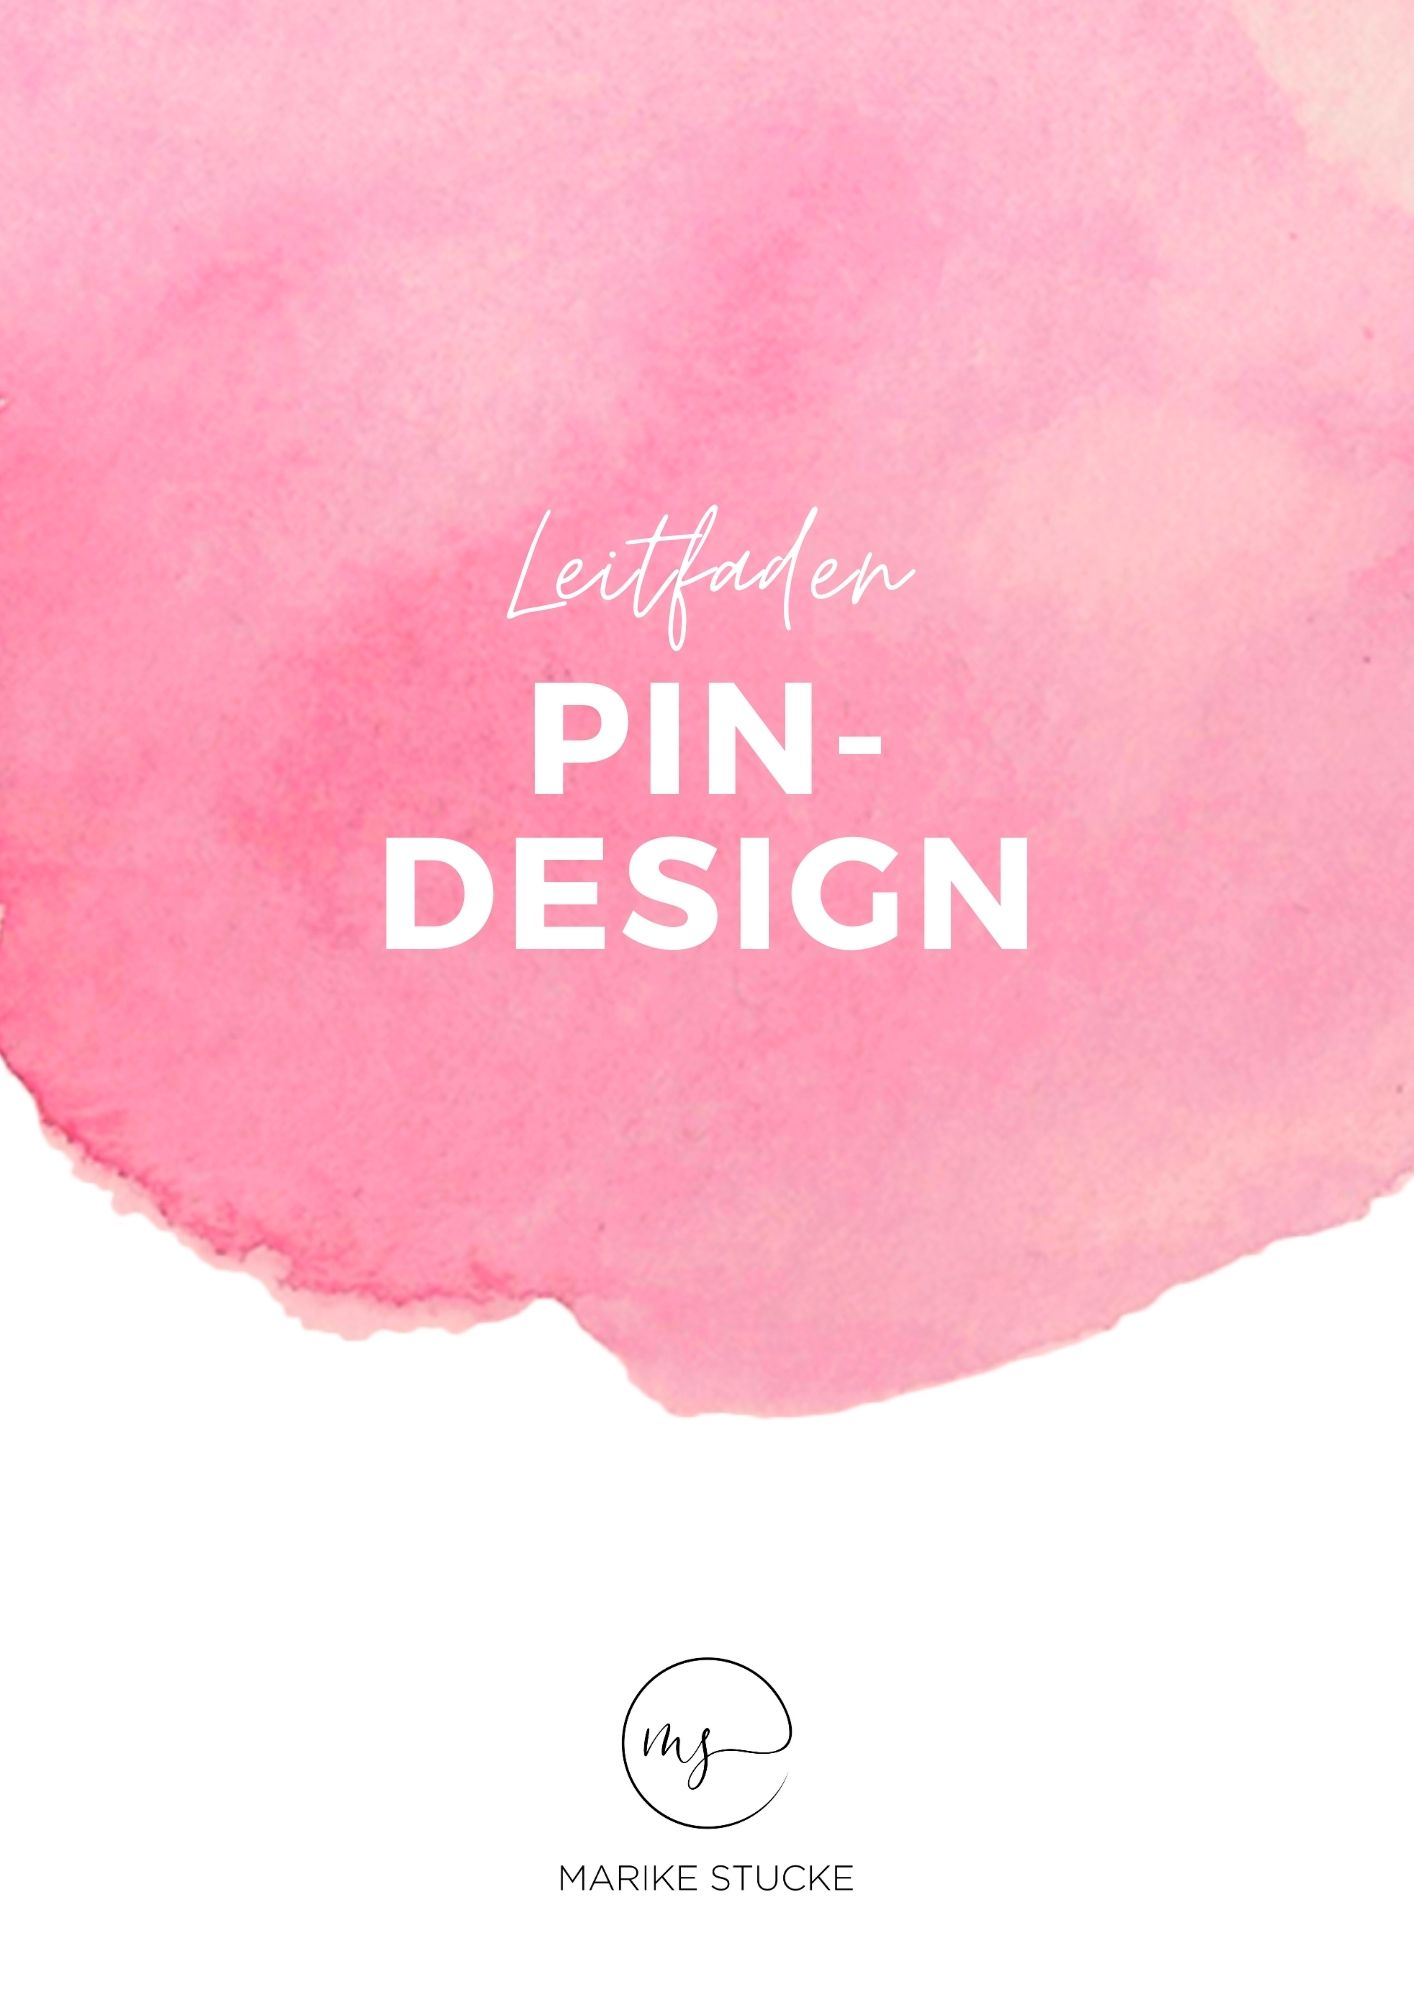 Pin-Design Leitfaden